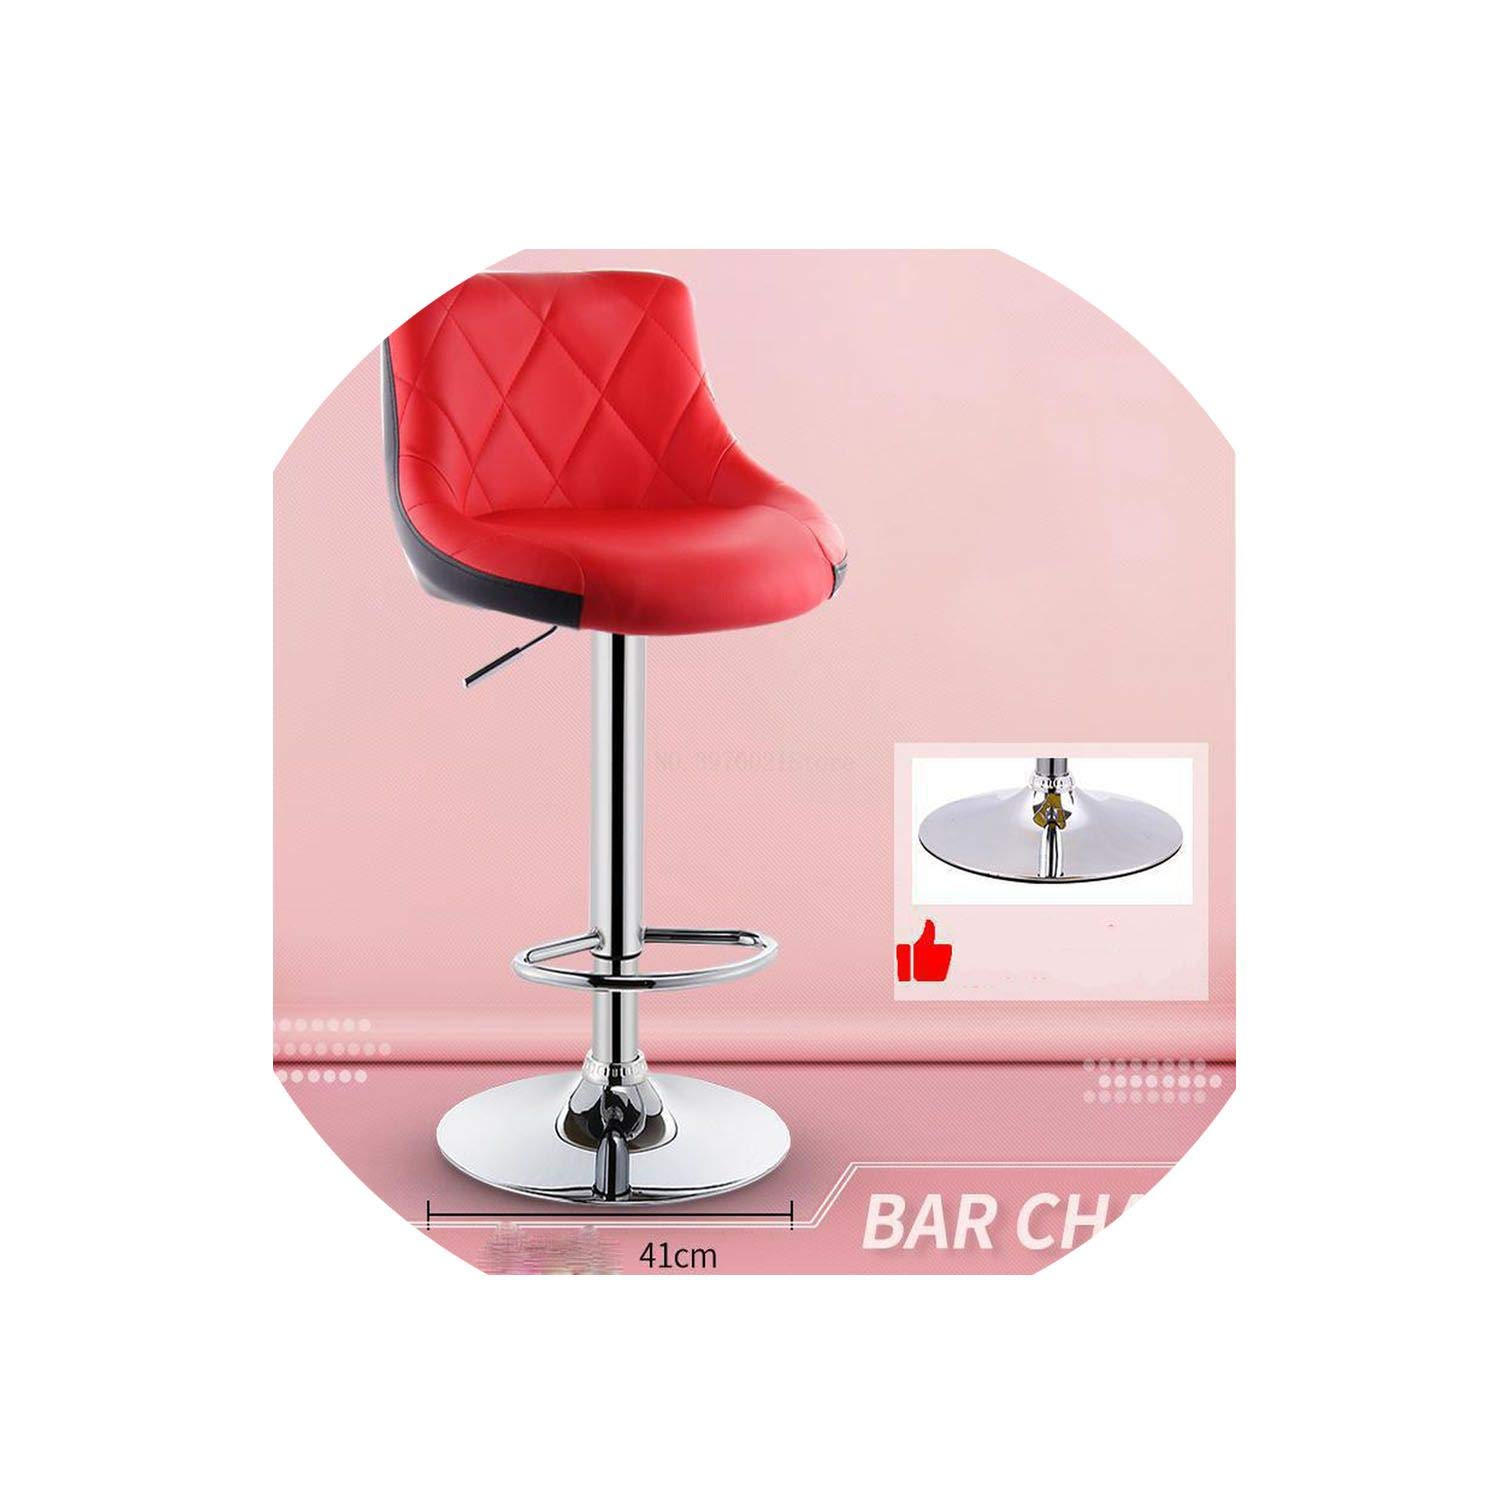 14 one size Bar Stool Lift redating Bar Chair Cash Register High Stool Home Beauty Front Back Stool,13